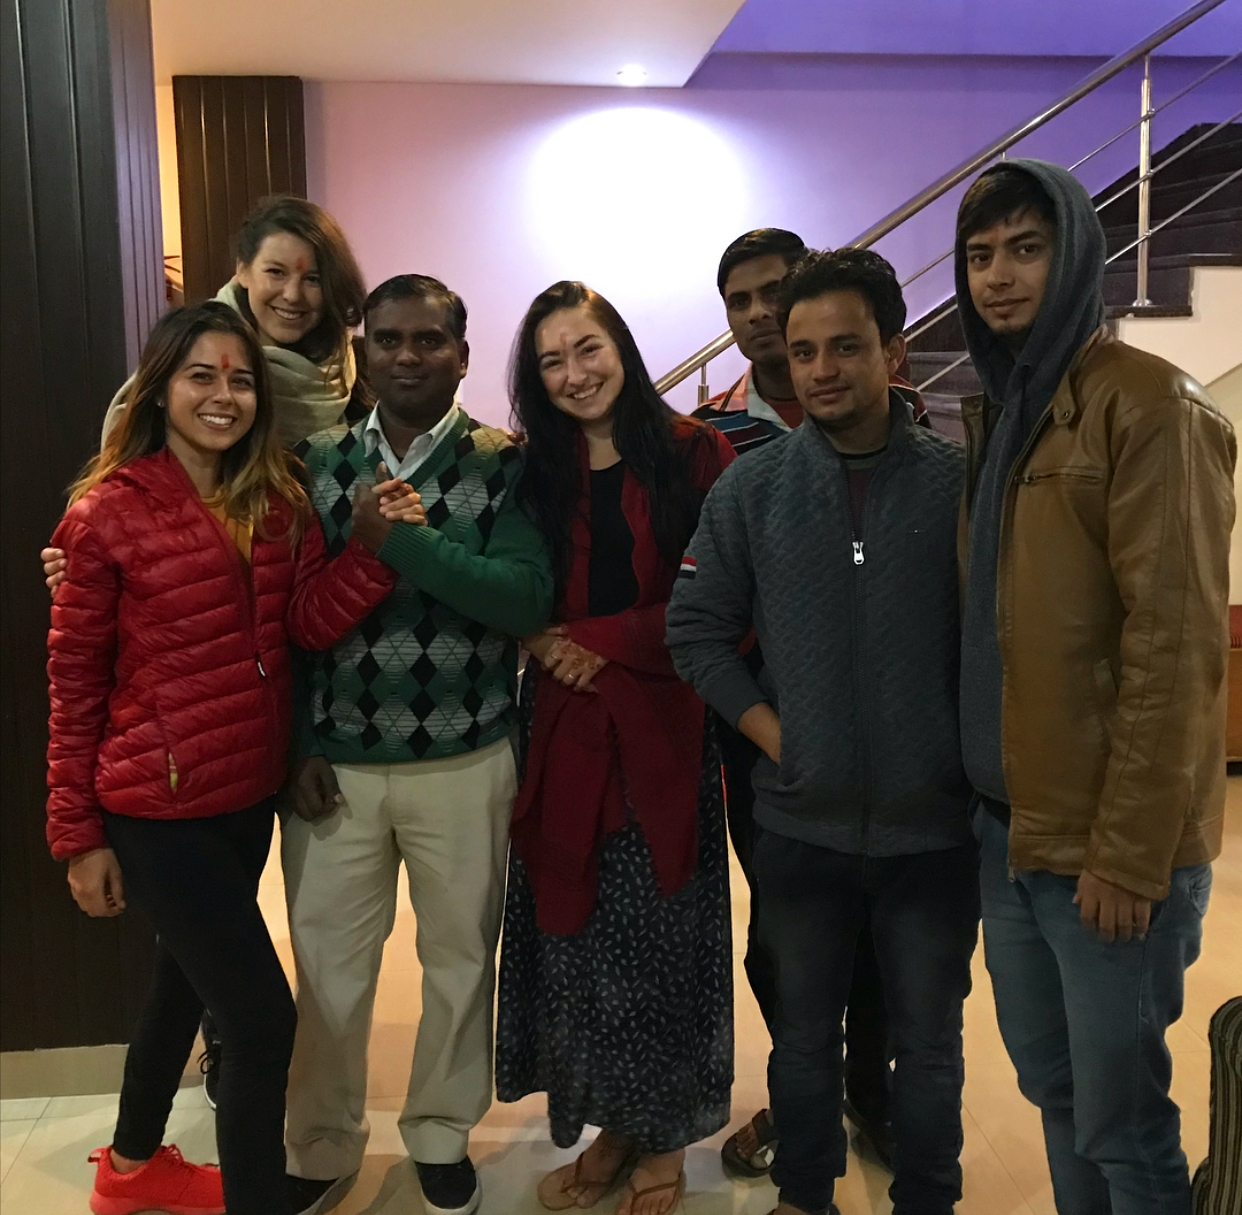 The super amazing team at the Rishikesh Nath Yogshala, treating us well and truly as though we really do live in a palace (the hotel is called the Leisure Palace).